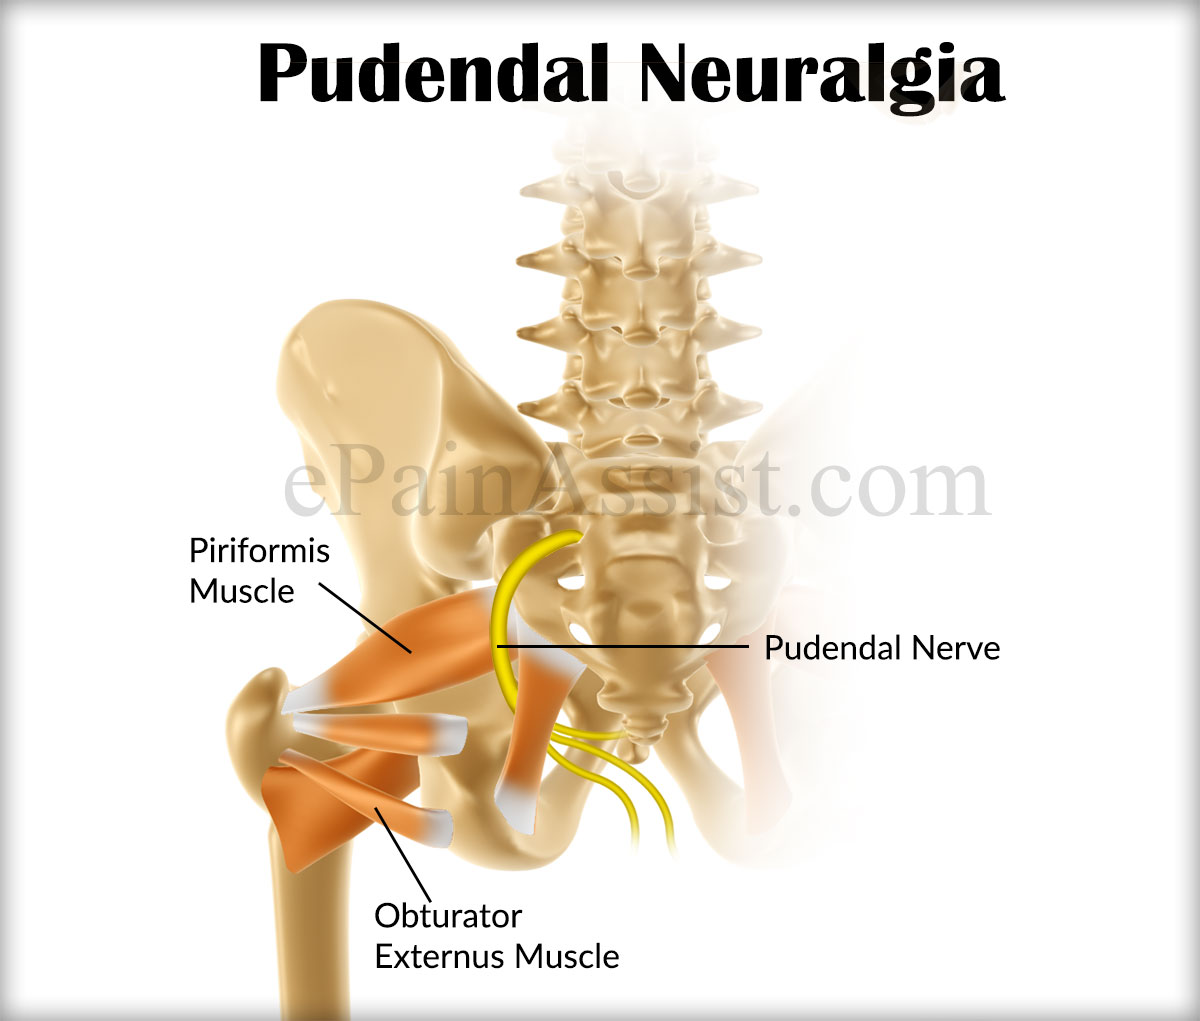 pudendal neuralgia|causes|symptoms|treatment, Skeleton